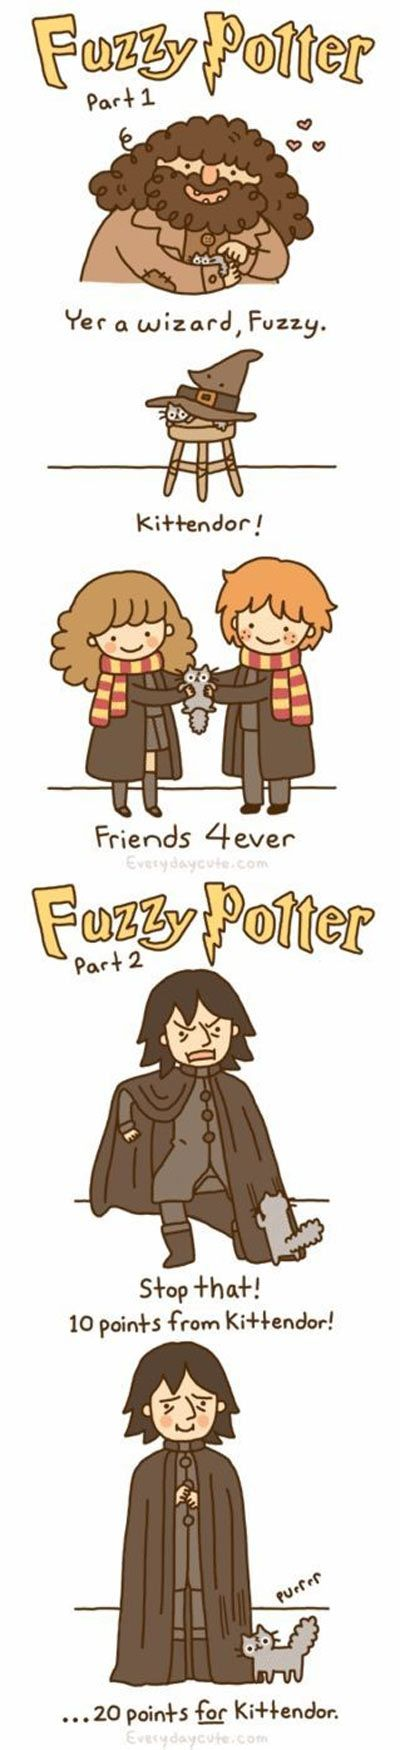 Potter… Fuzzy Potter (brought to you by the doctor cat people)Fuzzy Potter (brought to you by the doctor cat people)